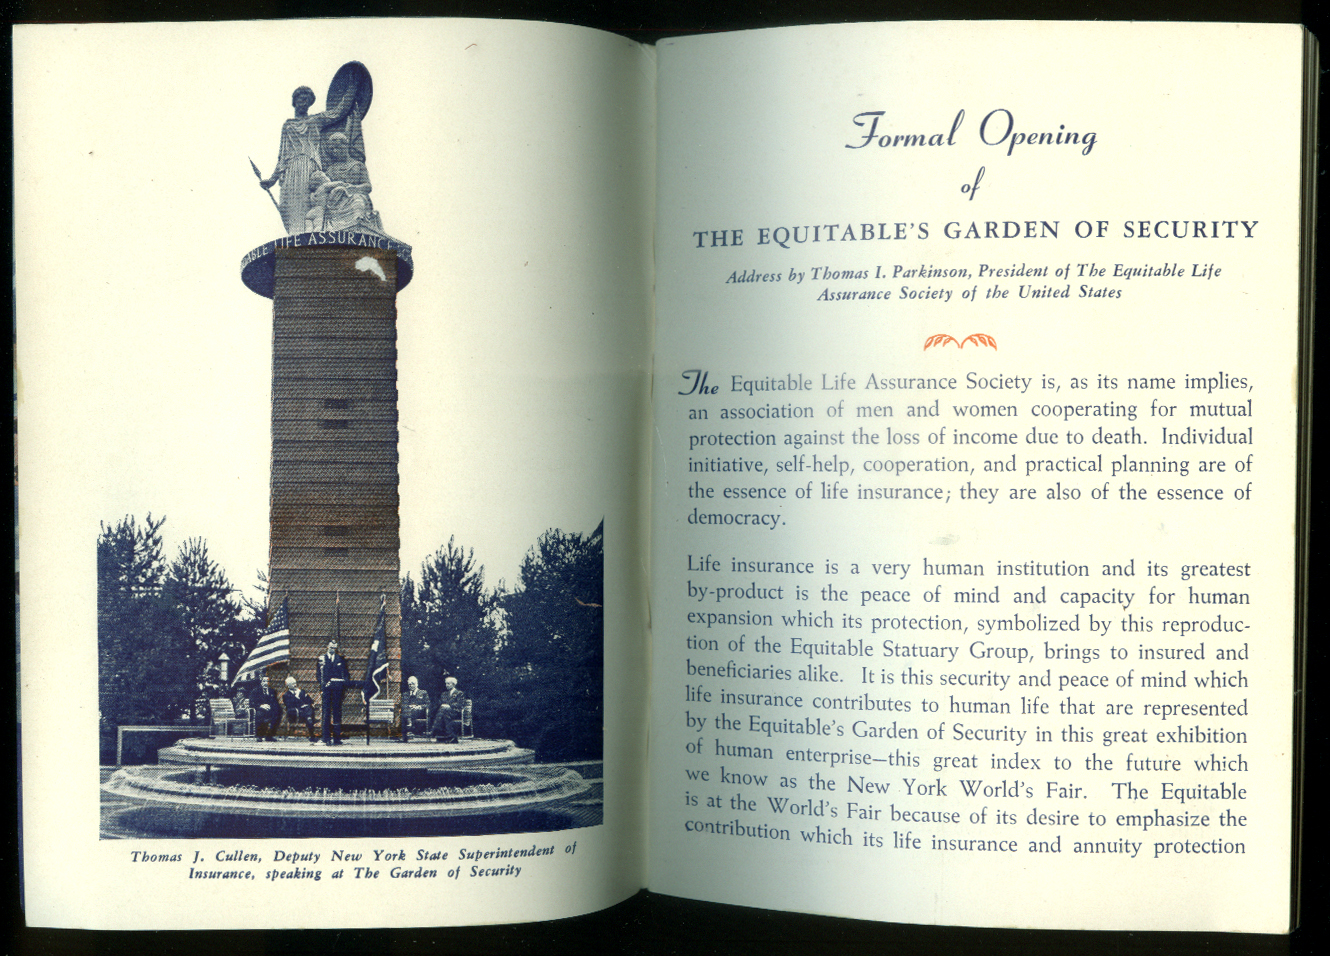 Equitable Life Assurance Guide to New York & World's Fair 1940